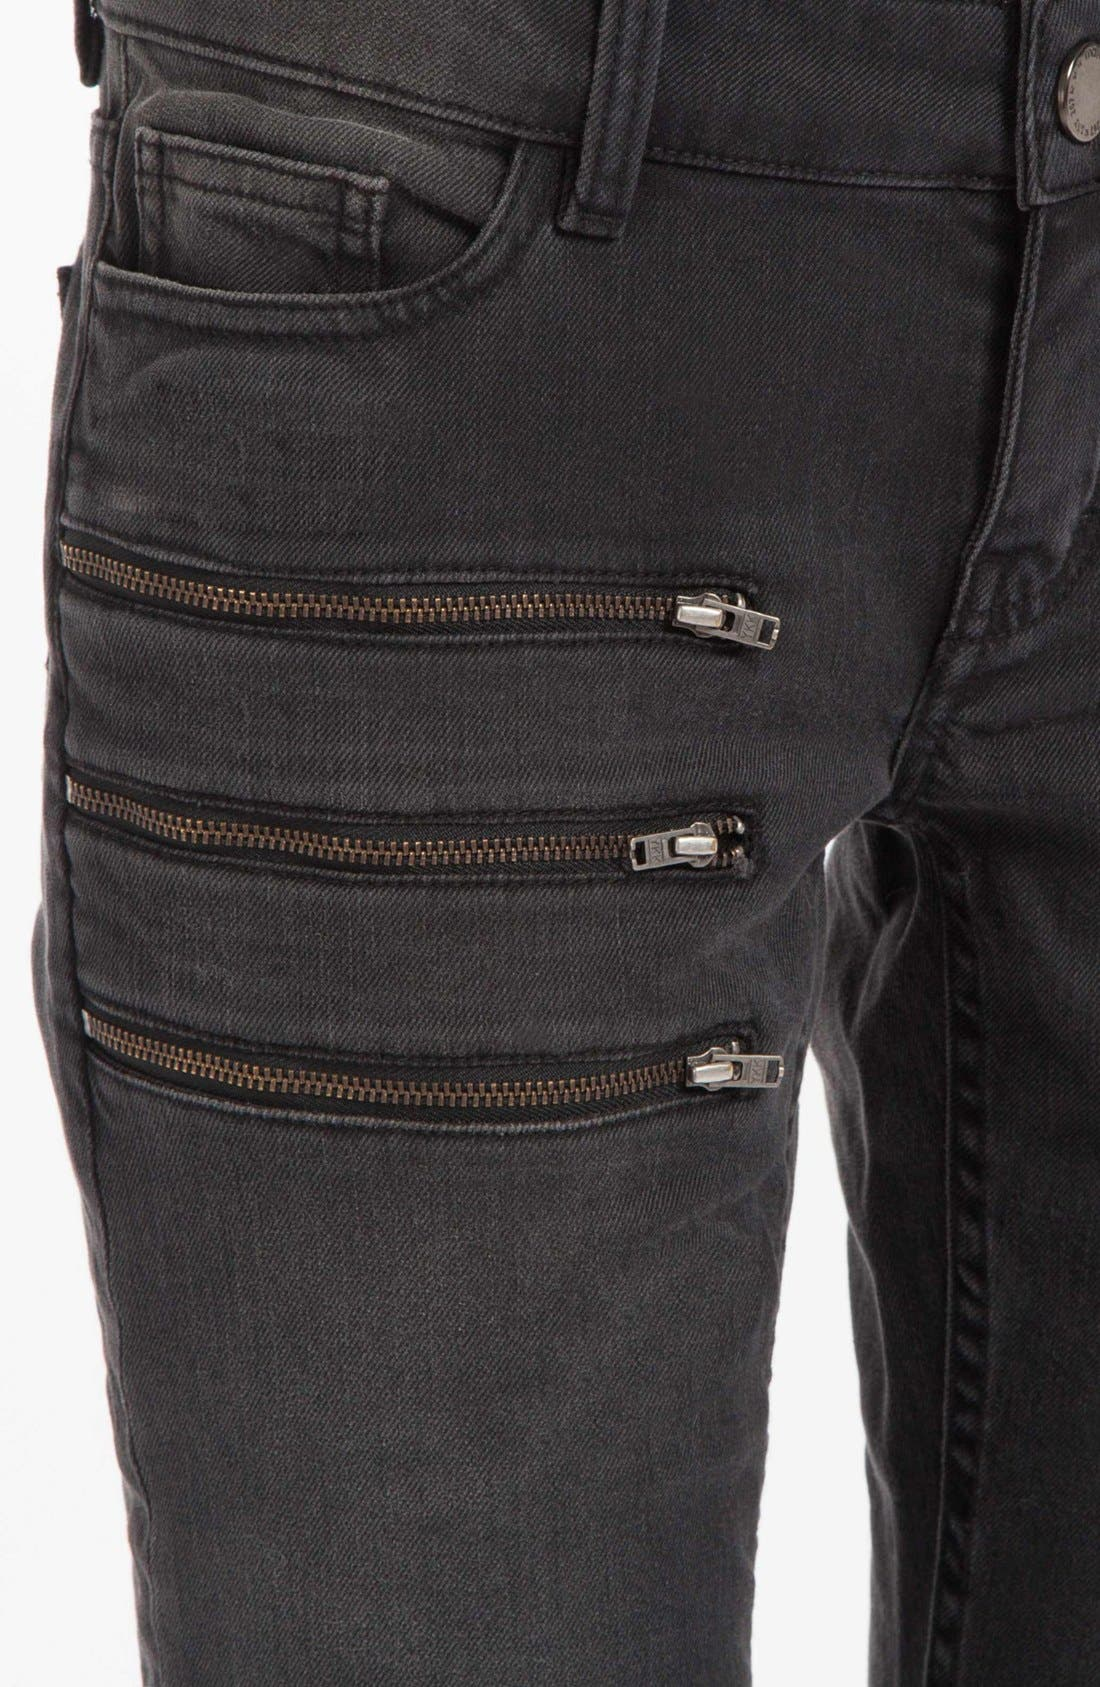 Alternate Image 3  - maje 'Dip' Colored Skinny Jeans (Noir)